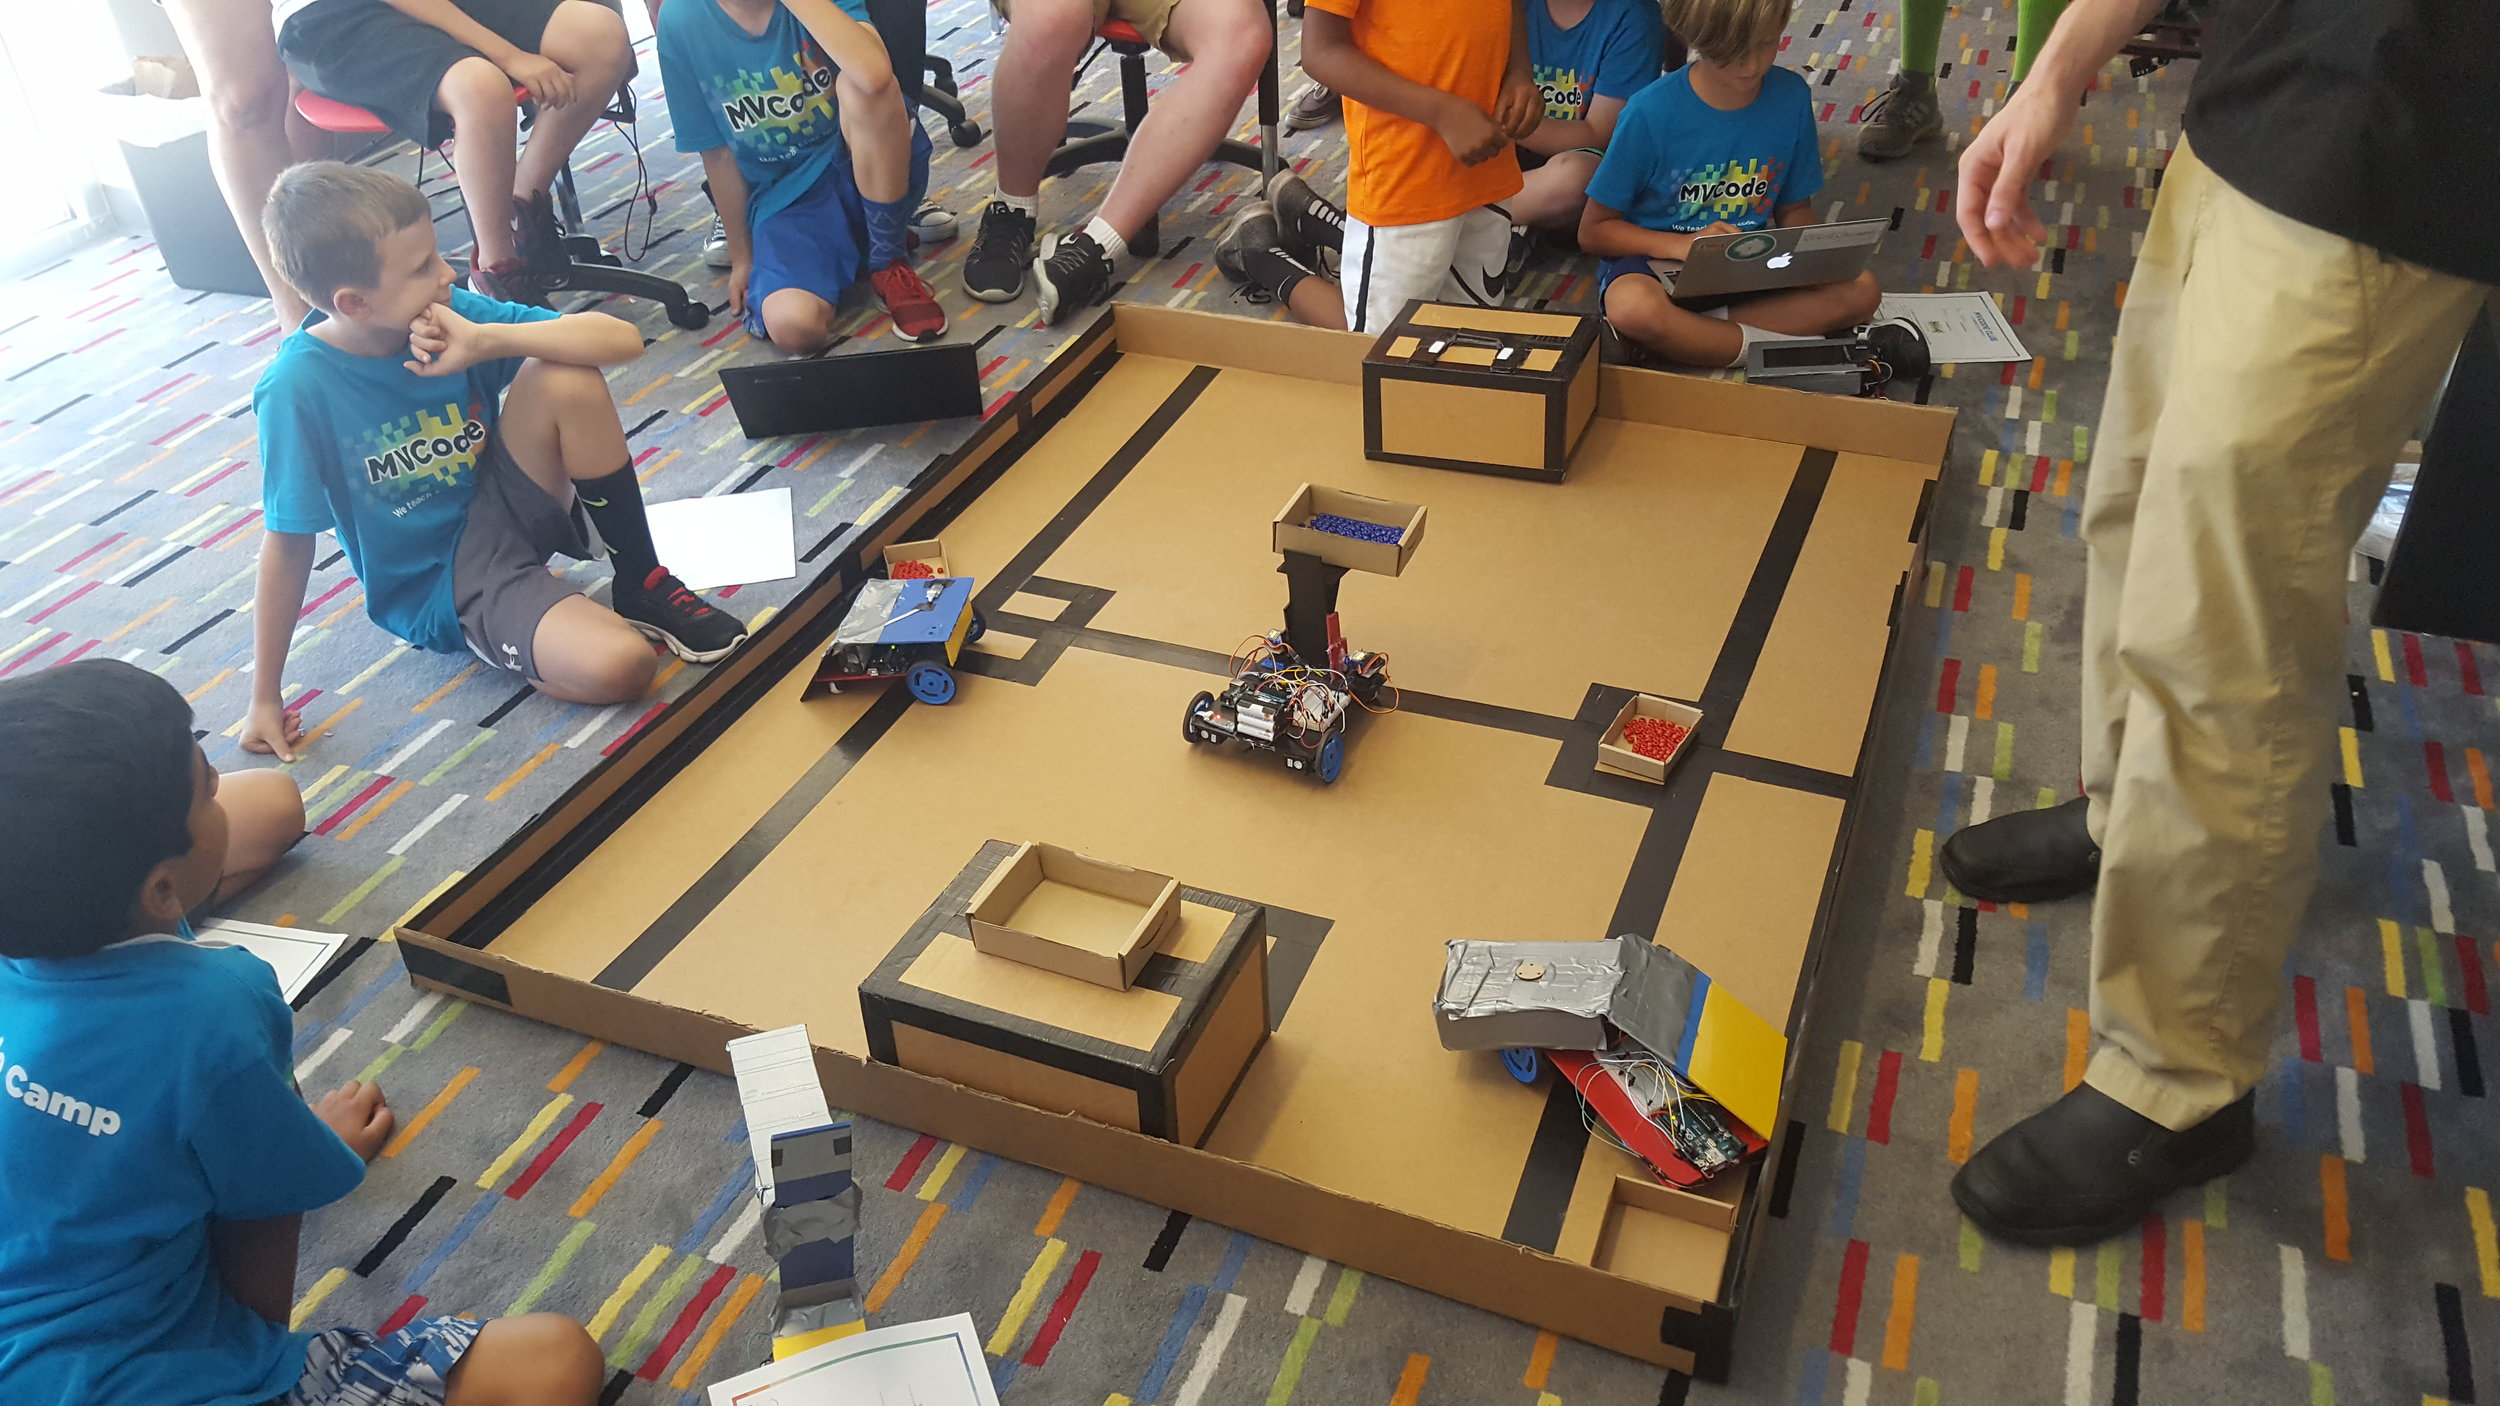 Learn How Advanced Robotics Will Change The Future - Build & Code your own Arduino RobotThis summer MVCode is offering a robotics camp for 2nd-8th graders. Campers will either make a robotic car or pet robot. Kick your engineering skills up a few notches! Campers who have successfully completed our Construction Bot Bead Challenge can advance their skills by building robots that combine maze-solving and line-following skills on our high-speed pathfinder relay race. You can also build your own custom remote controller of your dreams from scratch.